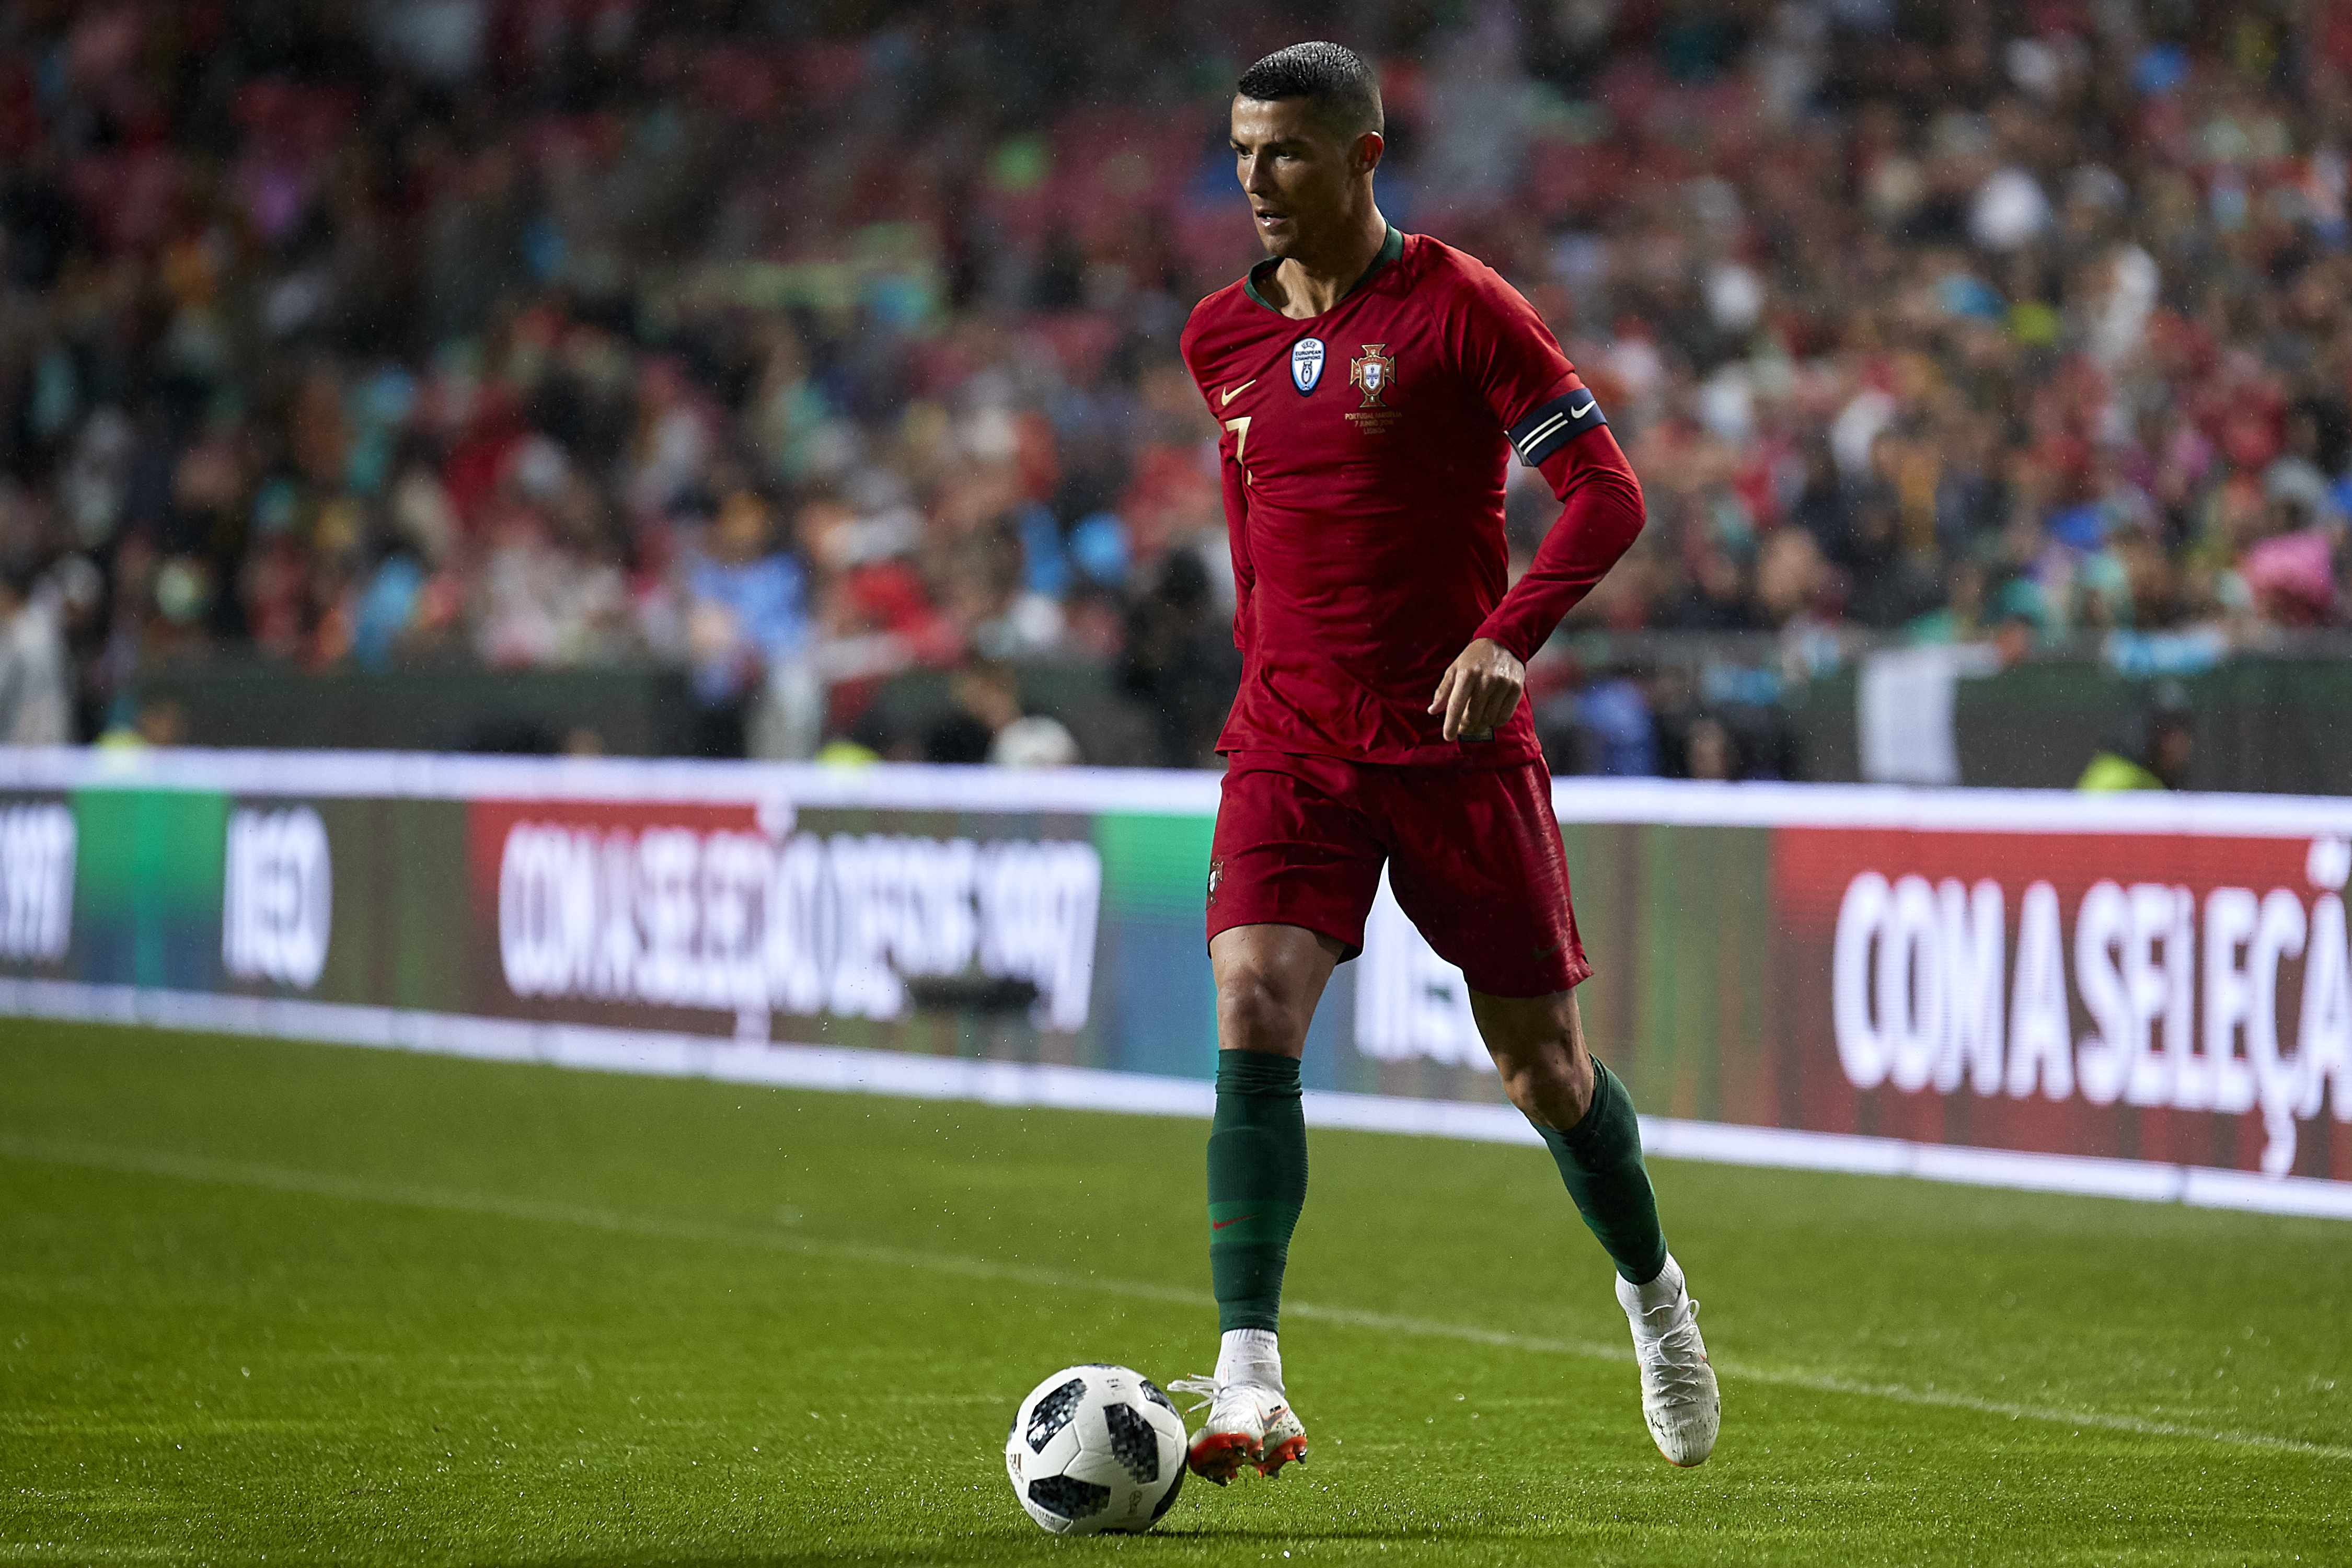 Cristiano Ronaldo of Portugal in action during the friendly match of preparation for FIFA 2018 World Cup between Portugal and Algeria at the Estadio do Sport Lisboa e Benfica on June 7, 2018 in Lisbon, Portugal.